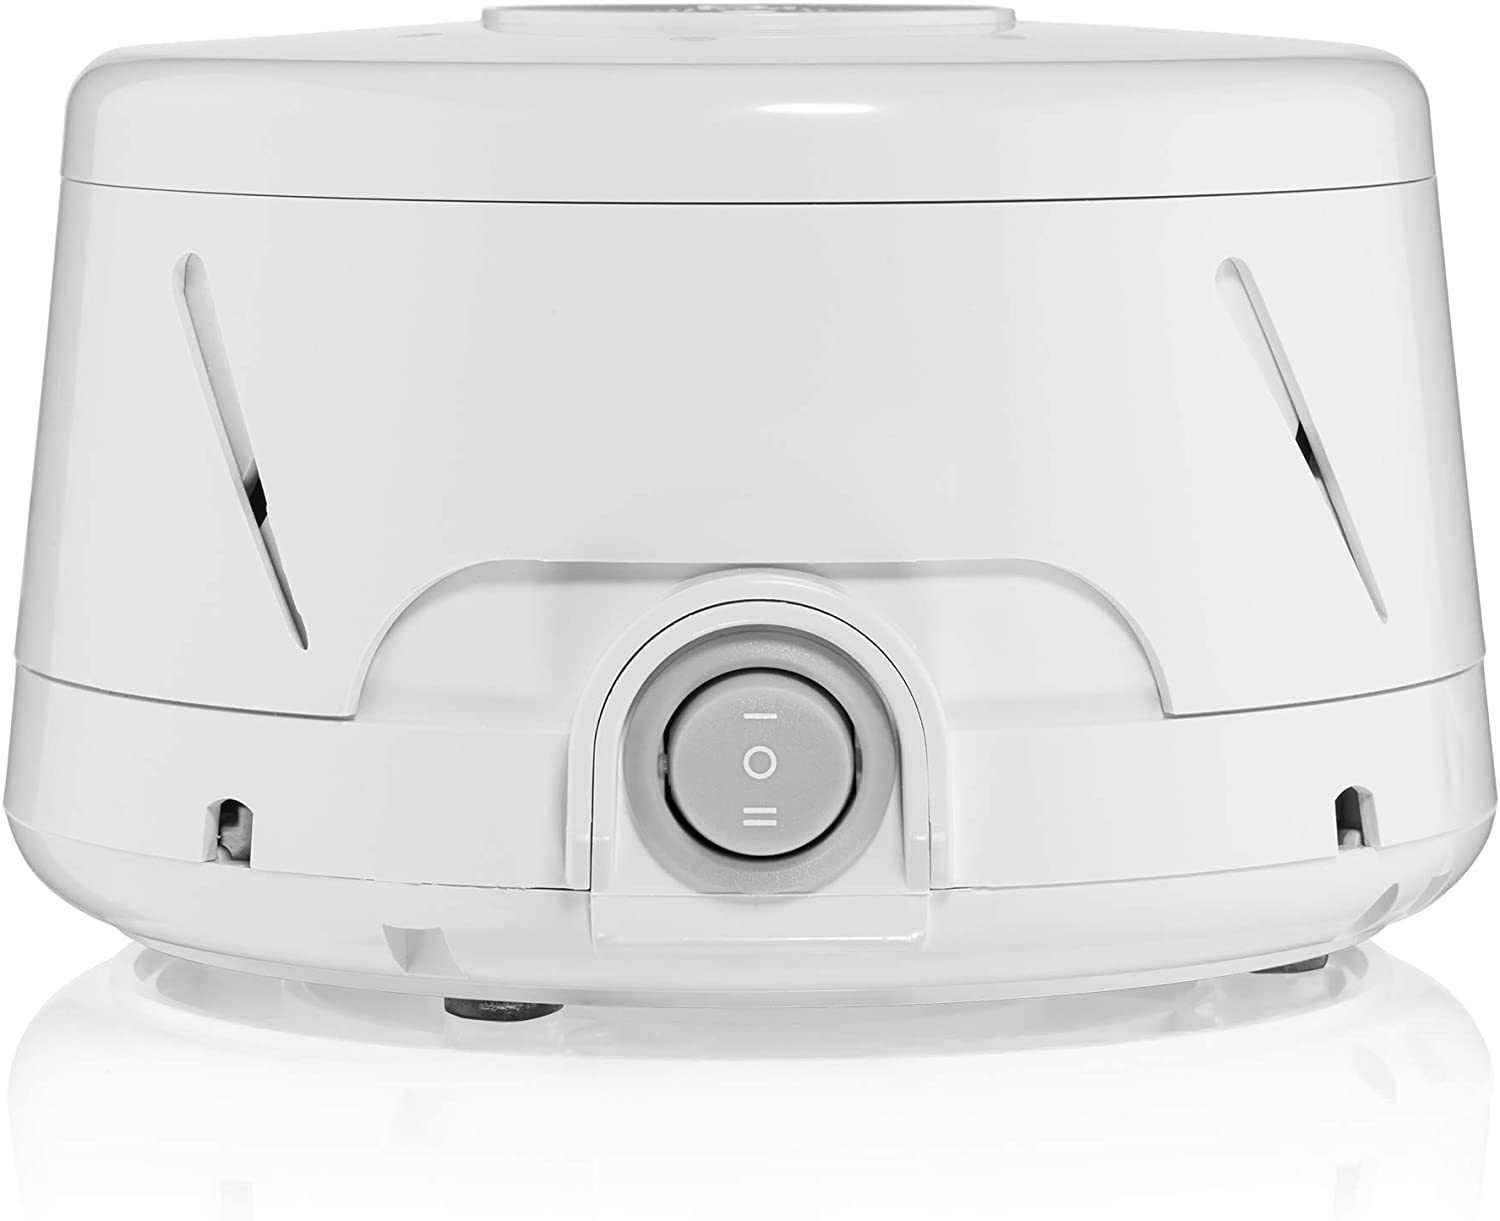 Dohm Classic (White) | The Original